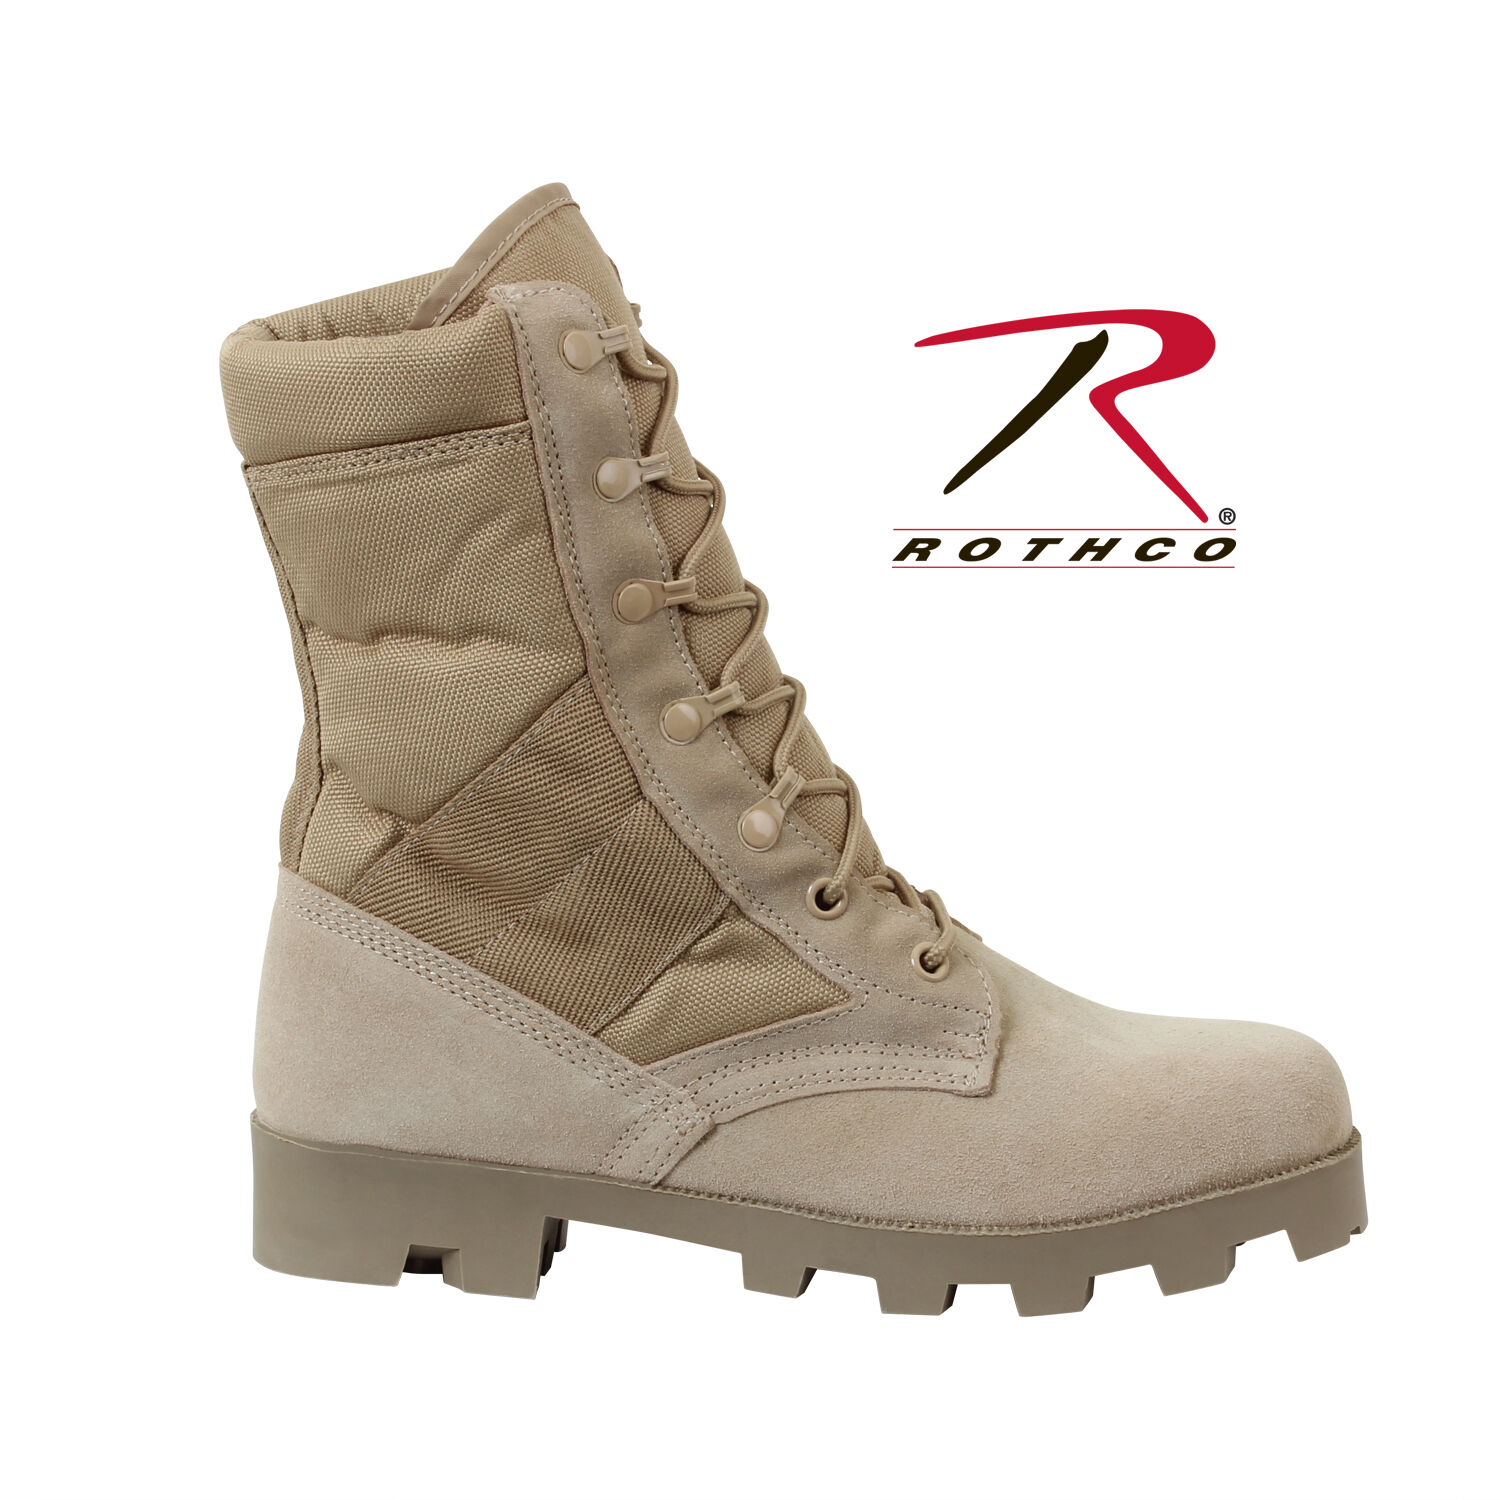 redhco 5057 G.I. Type Speedlace Desert Tan Jungle Boot